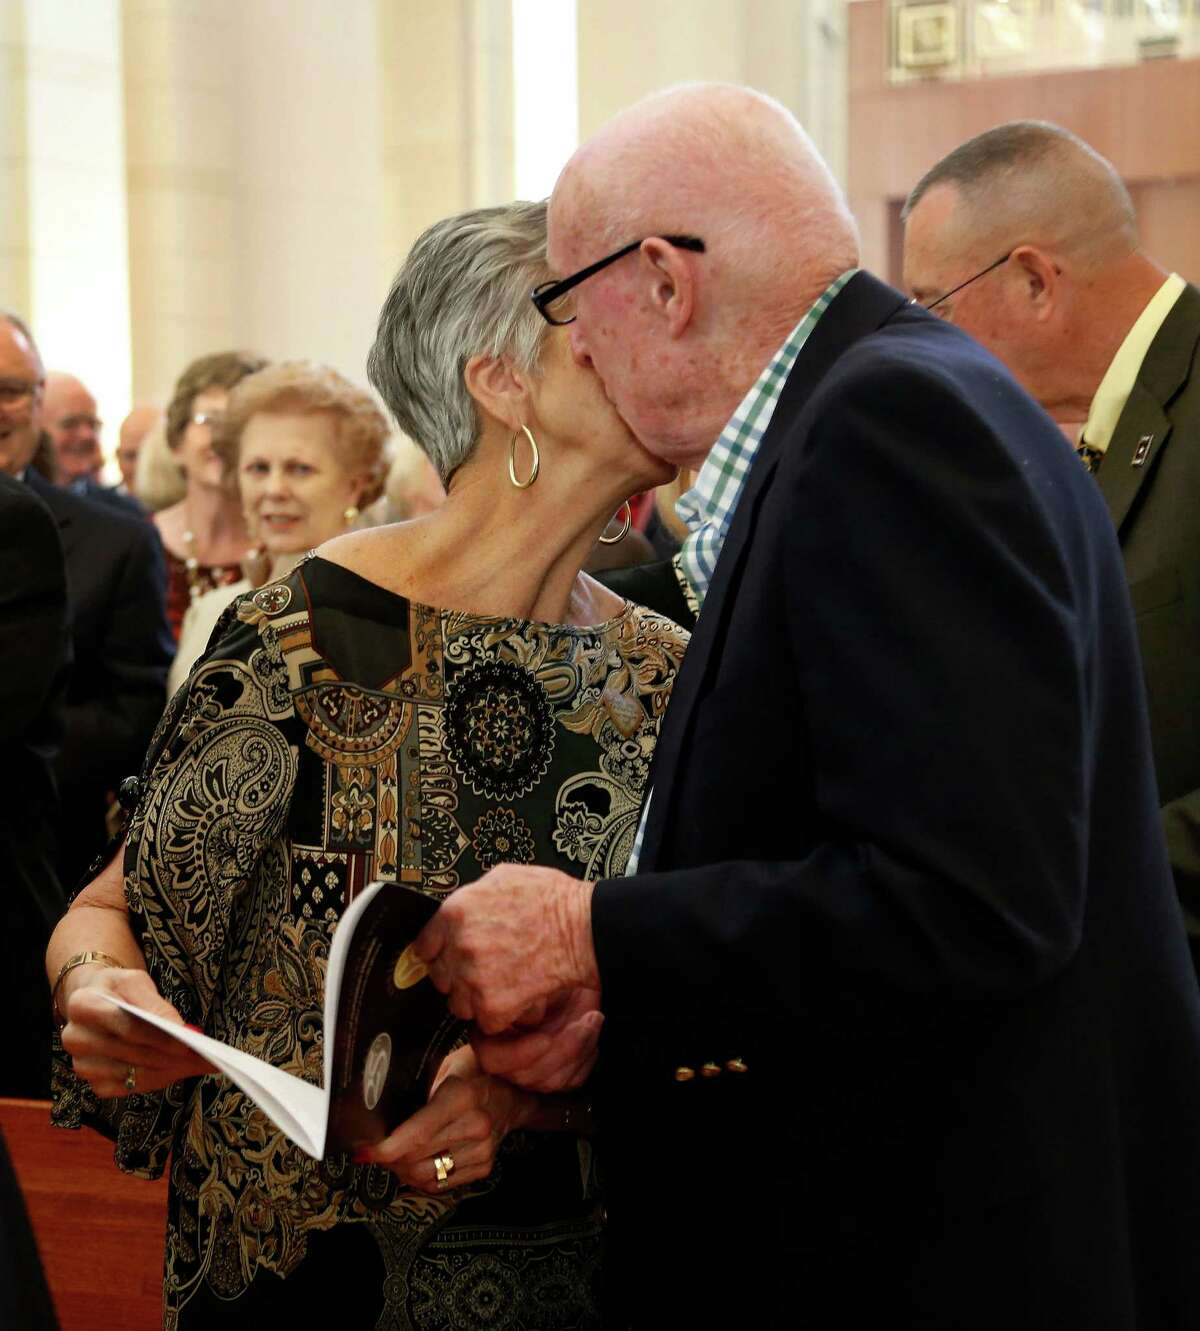 Bert and Joann Campbell, married 50 years, kiss after a brief ceremony during the 2014 Wedding Anniversary Jubilee Mass at the Co-Cathedral of the Sacred Heart, Sunday, Oct. 26, 2014, in Houston. Cardinal Daniel DiNardo presided over the annual Mass that recognizes the commitment to the importance and permanence of marriage.